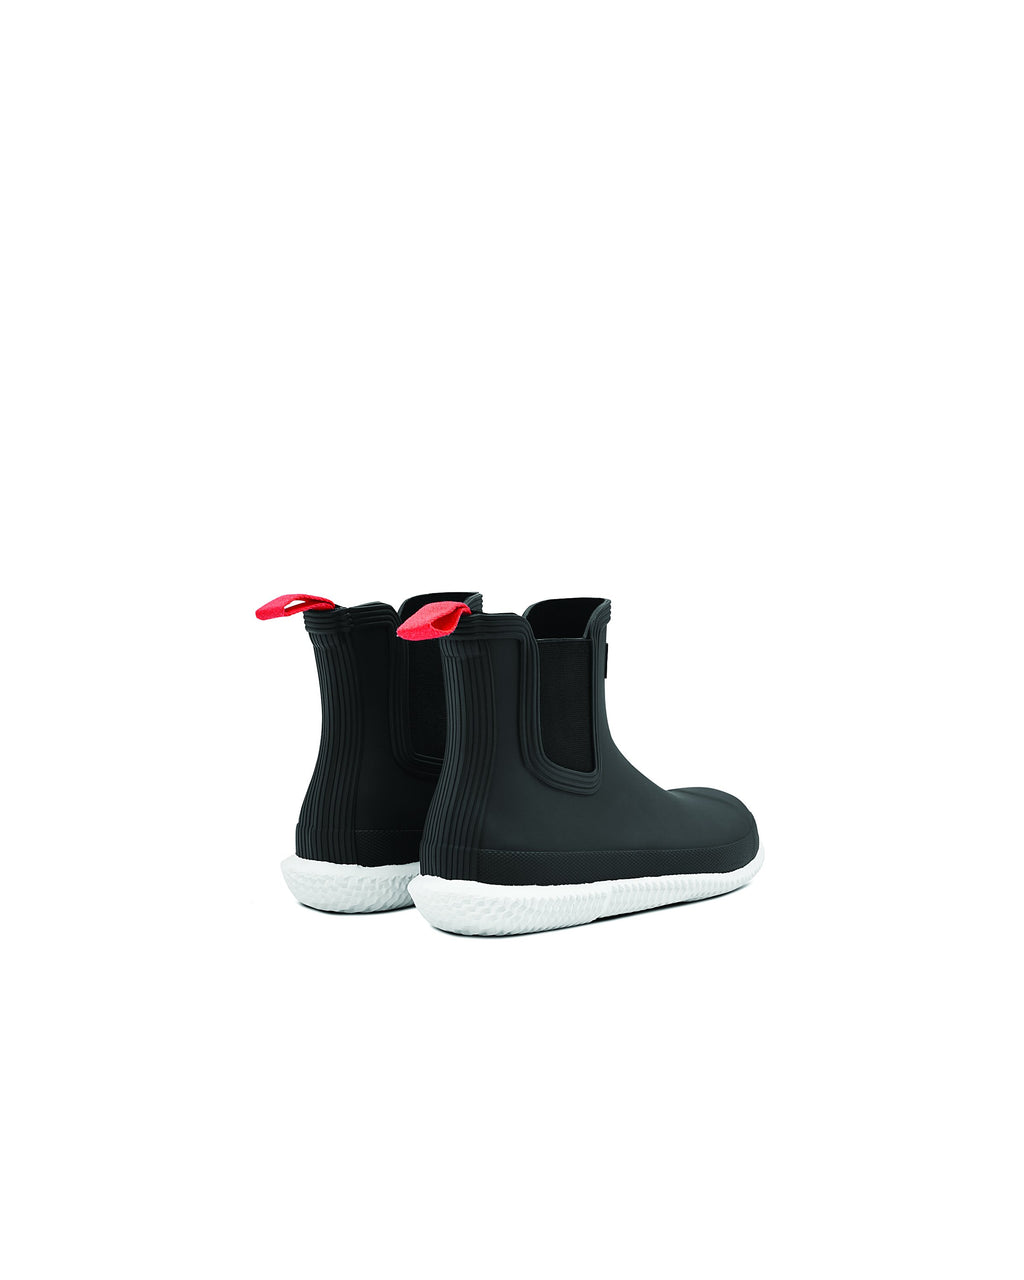 Black & White Original Calendar Sole Chelsea Boots